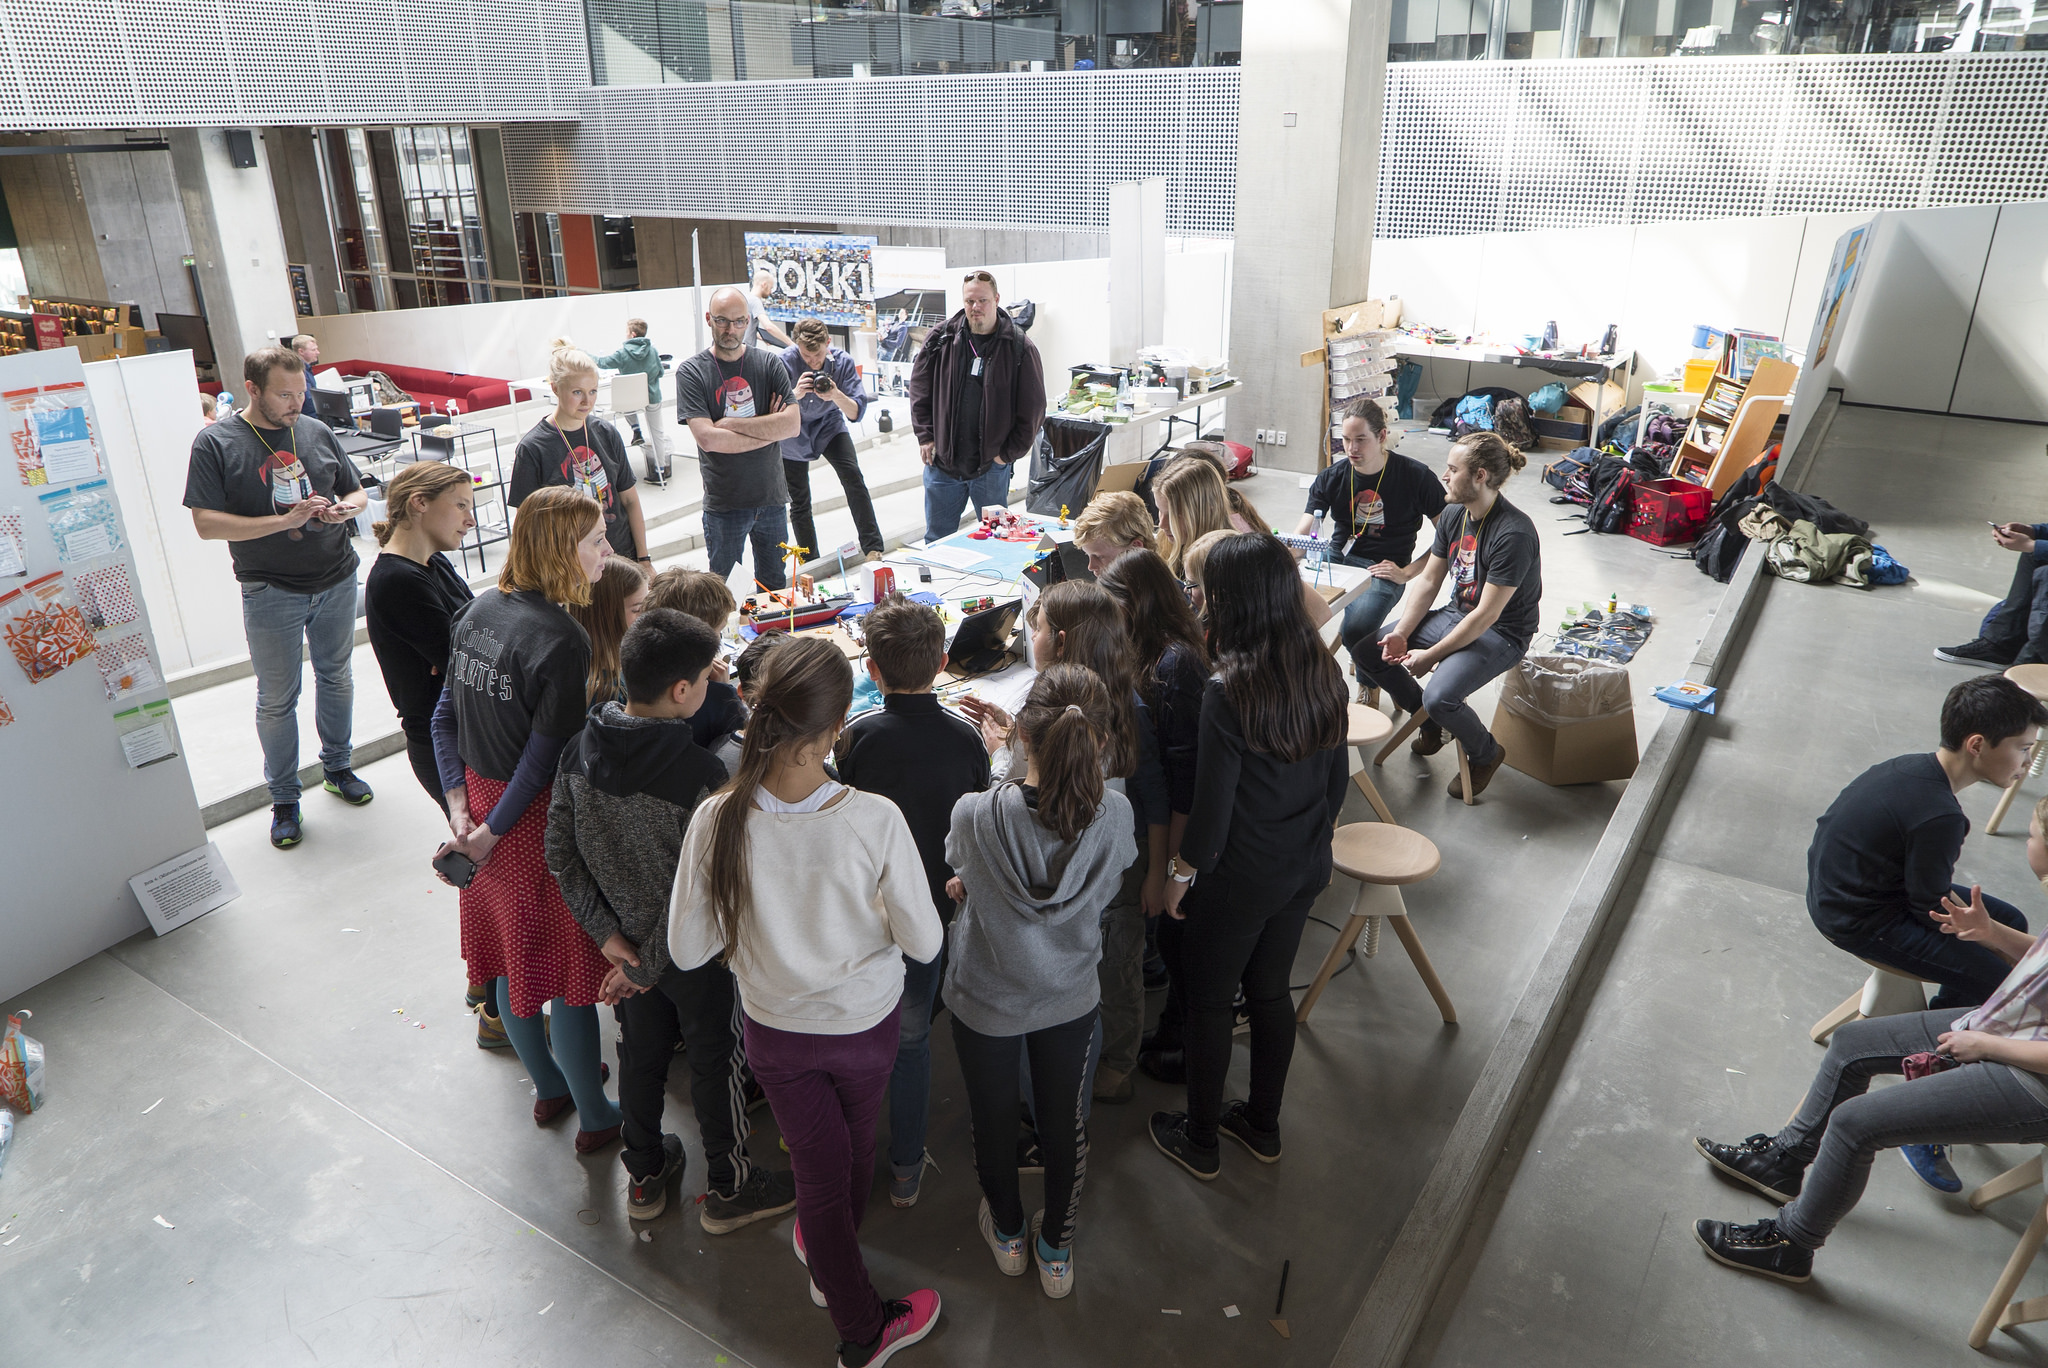 'Life between the shelves': Reimagining libraries as civic spaces